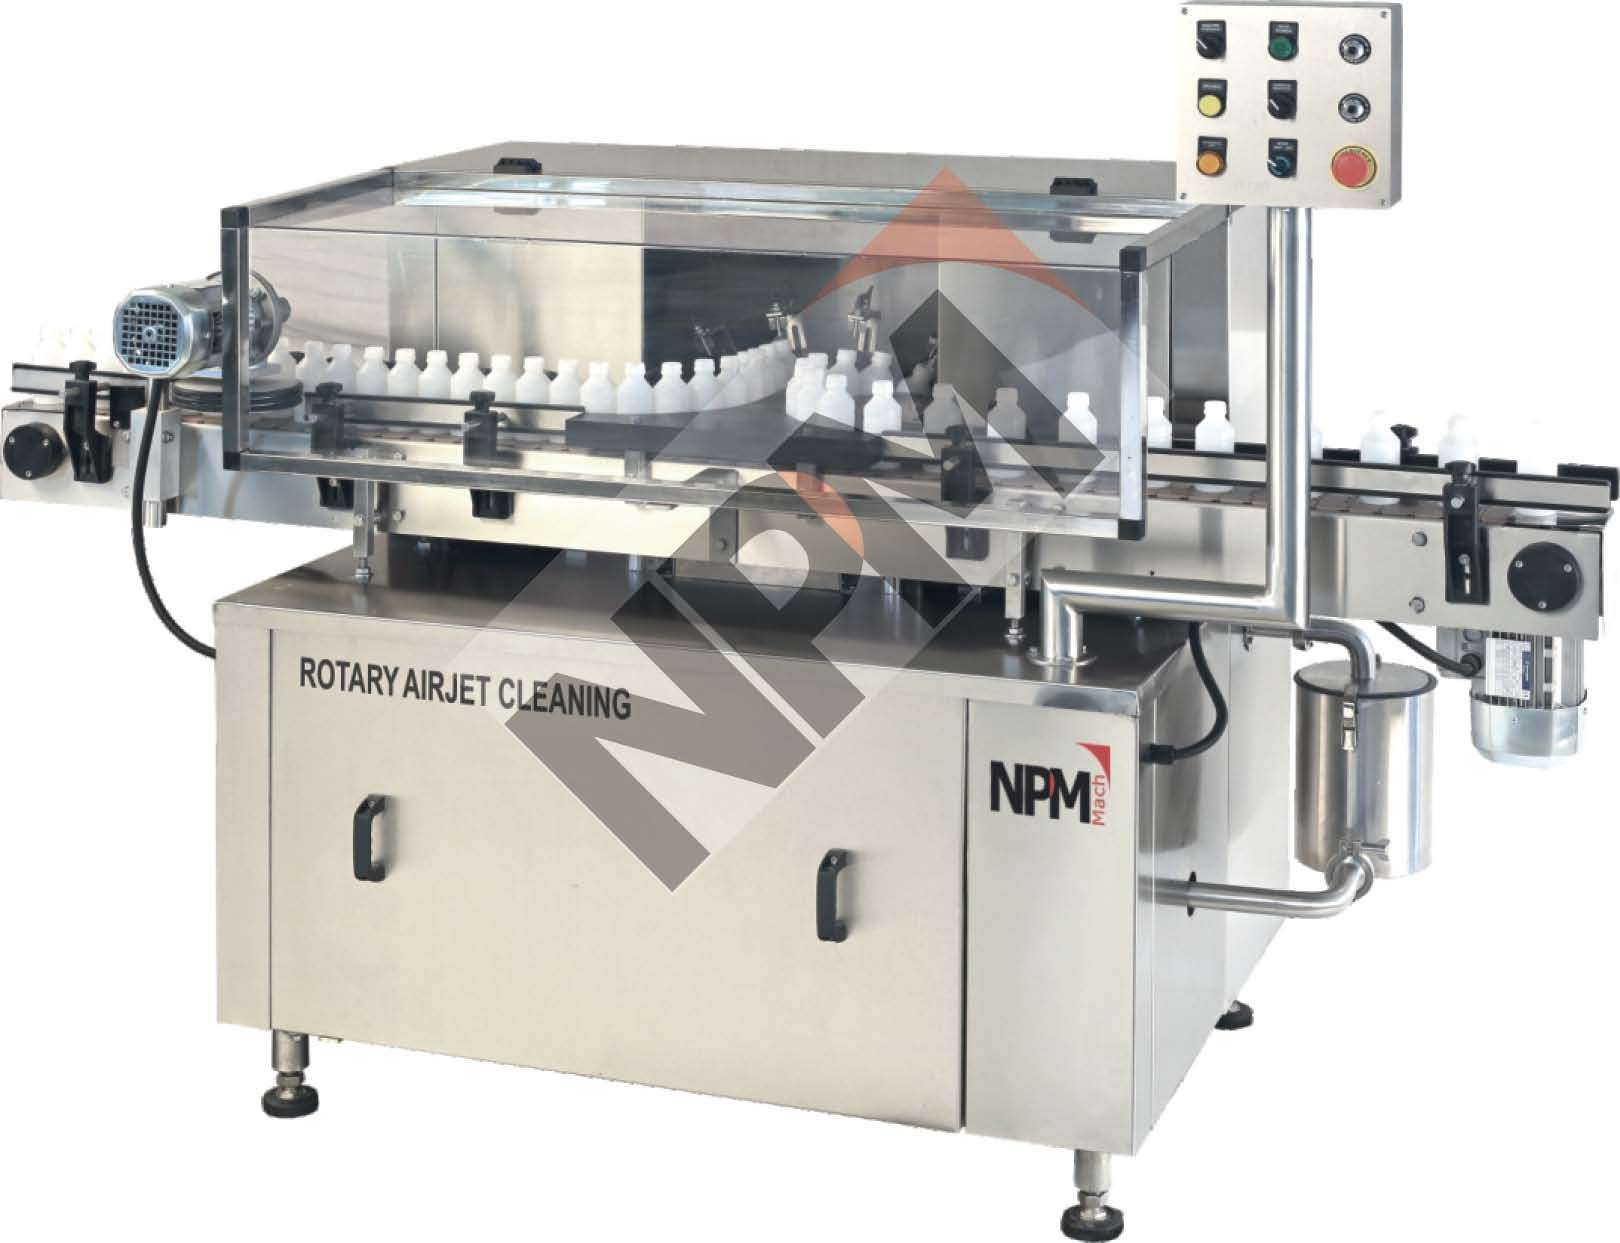 AUTOMATIC ROTARY AIR JET CLEANING MACHINE